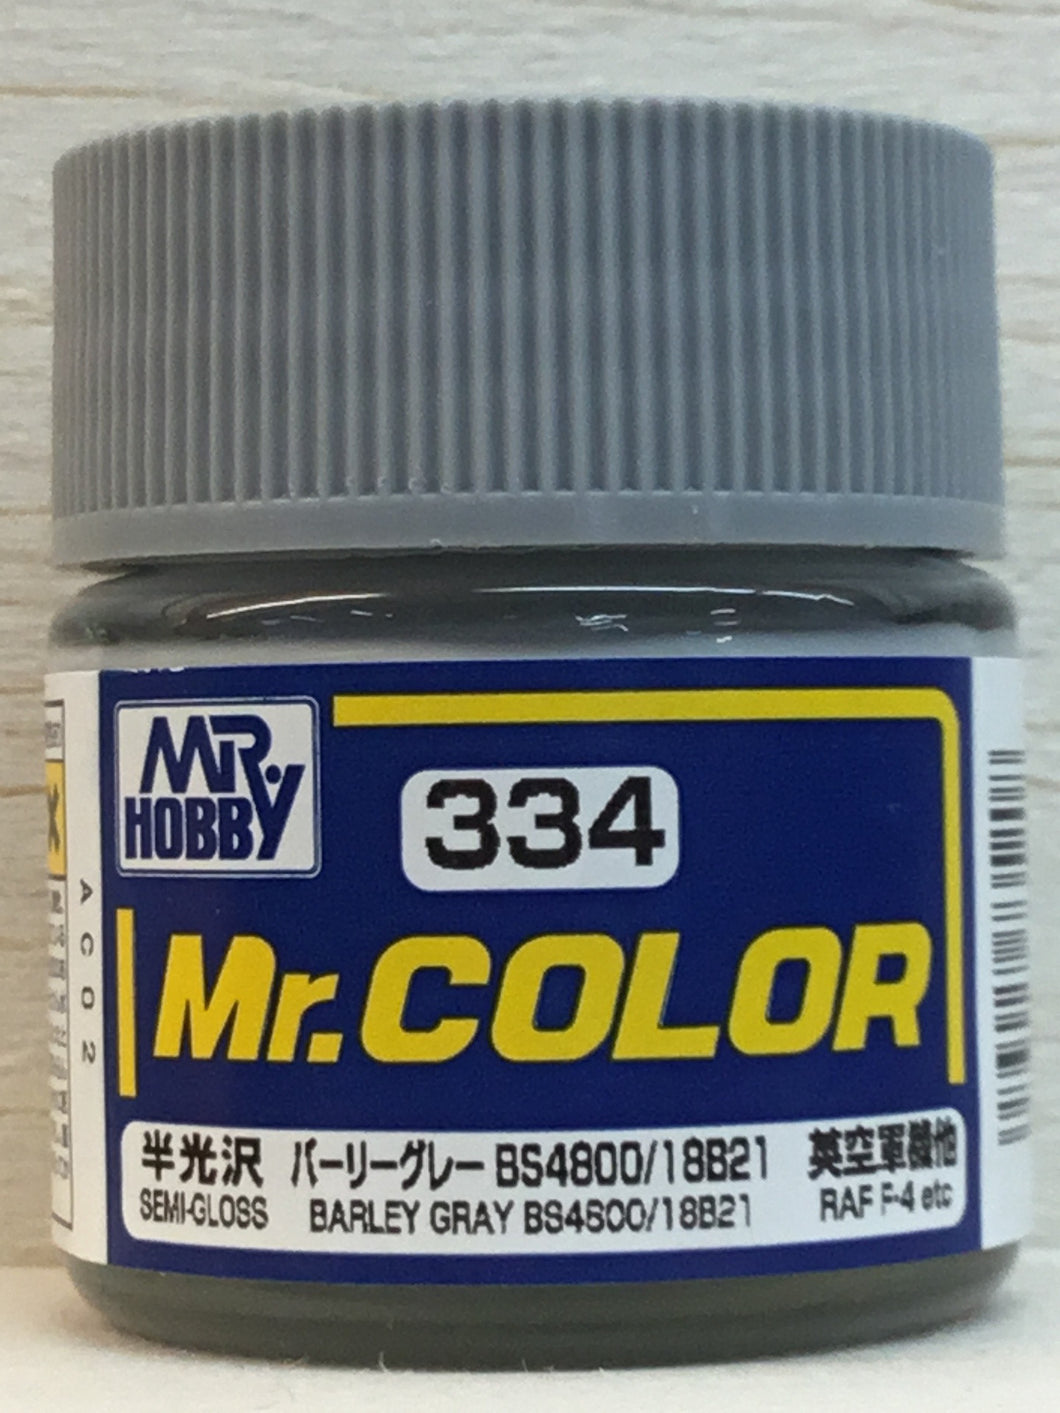 GUNZE MR COLOR C334 SEMI GLOSS BARLEY GRAY BS4800/18B21